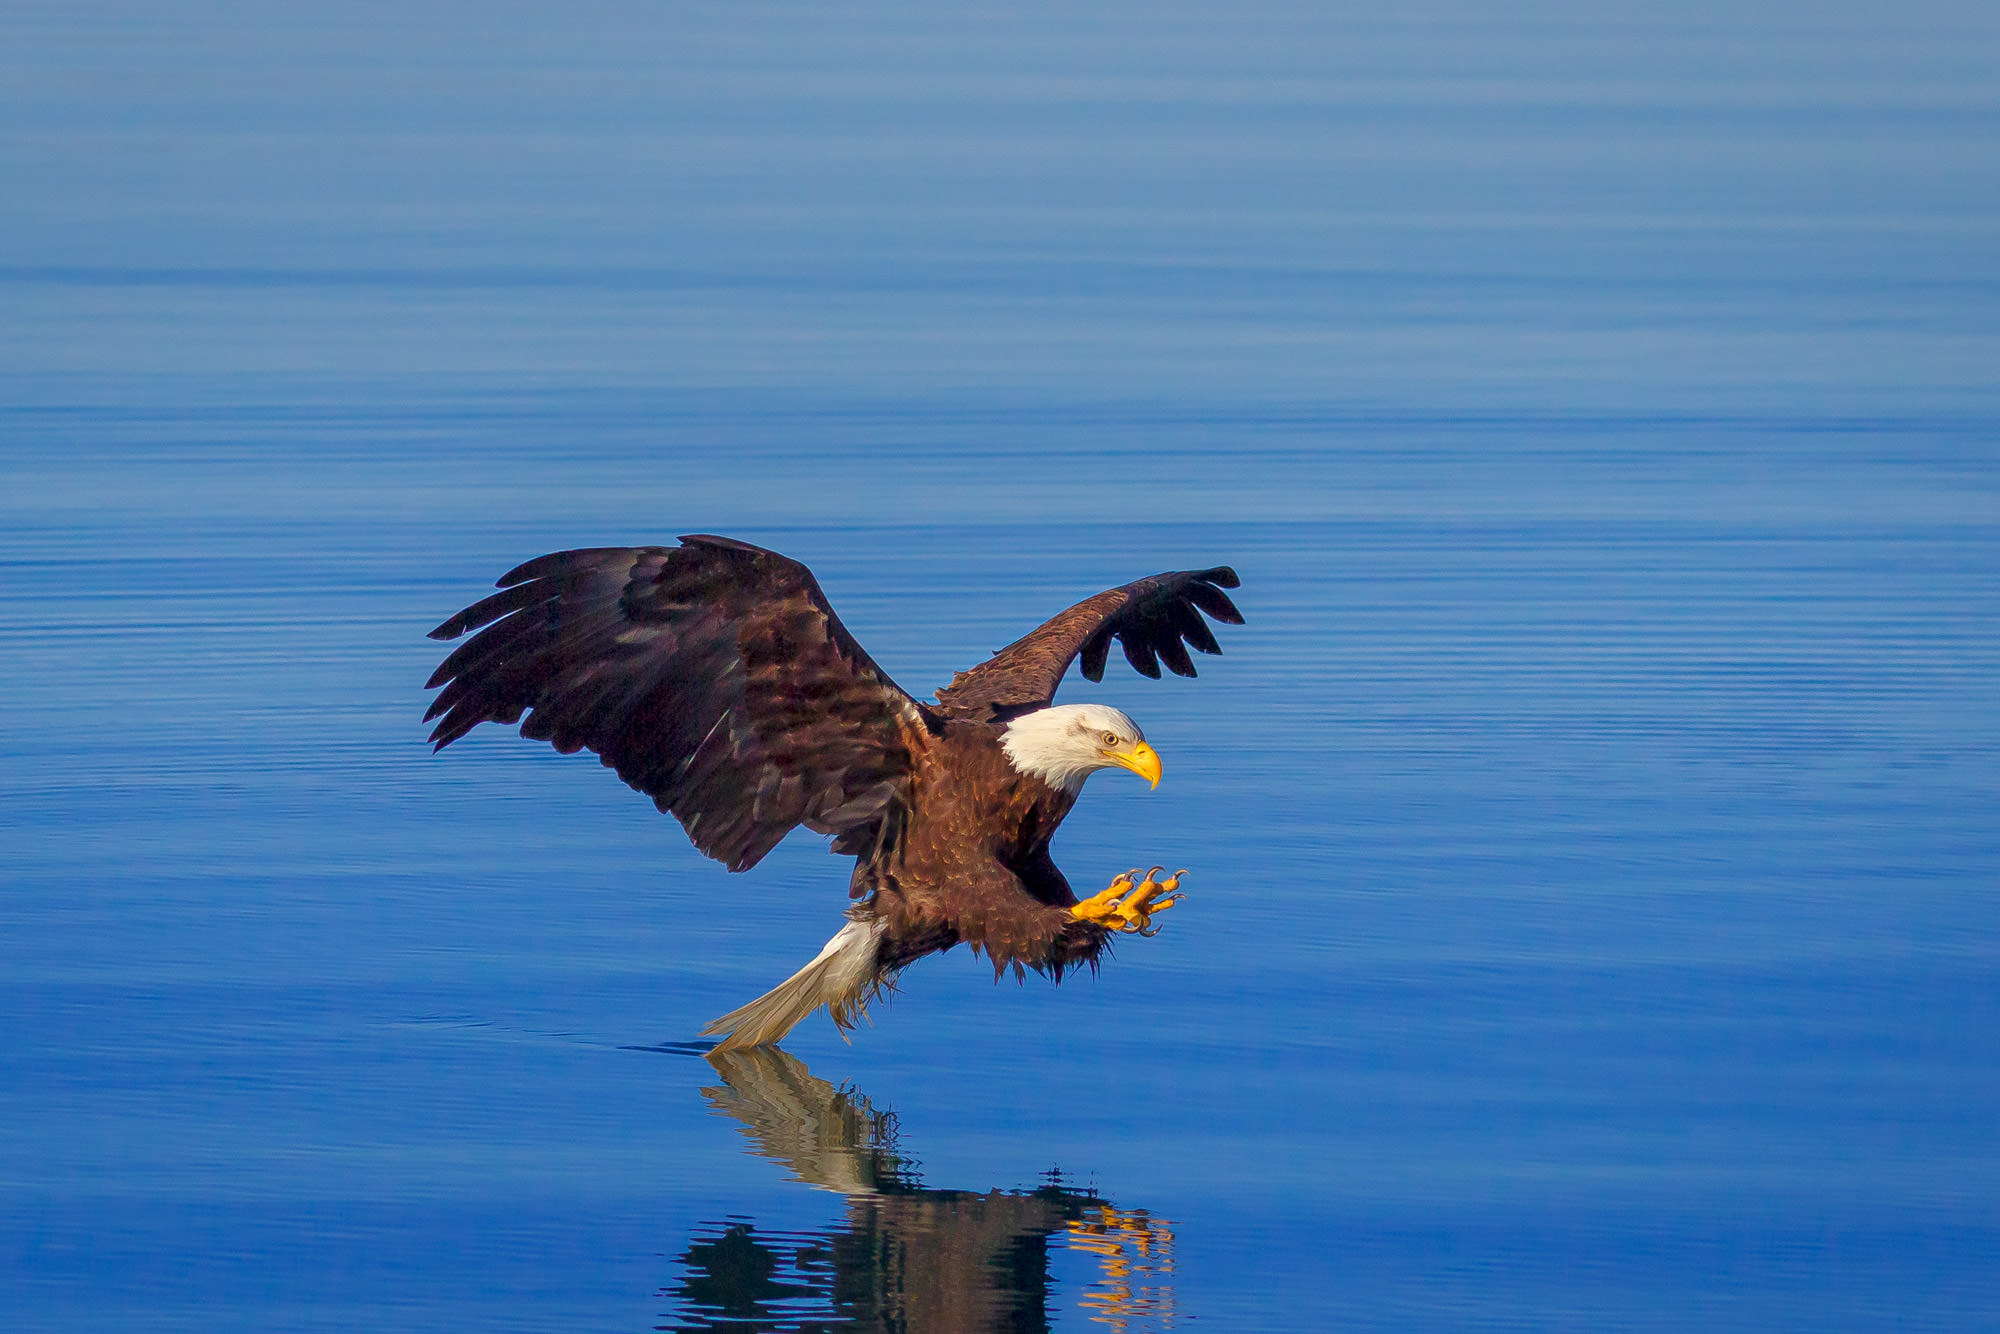 Eagle Fine Art Photography A Limited Edition photograph of a Bald Eagle swooping in dragging its tail on the calm water at Kachemak...